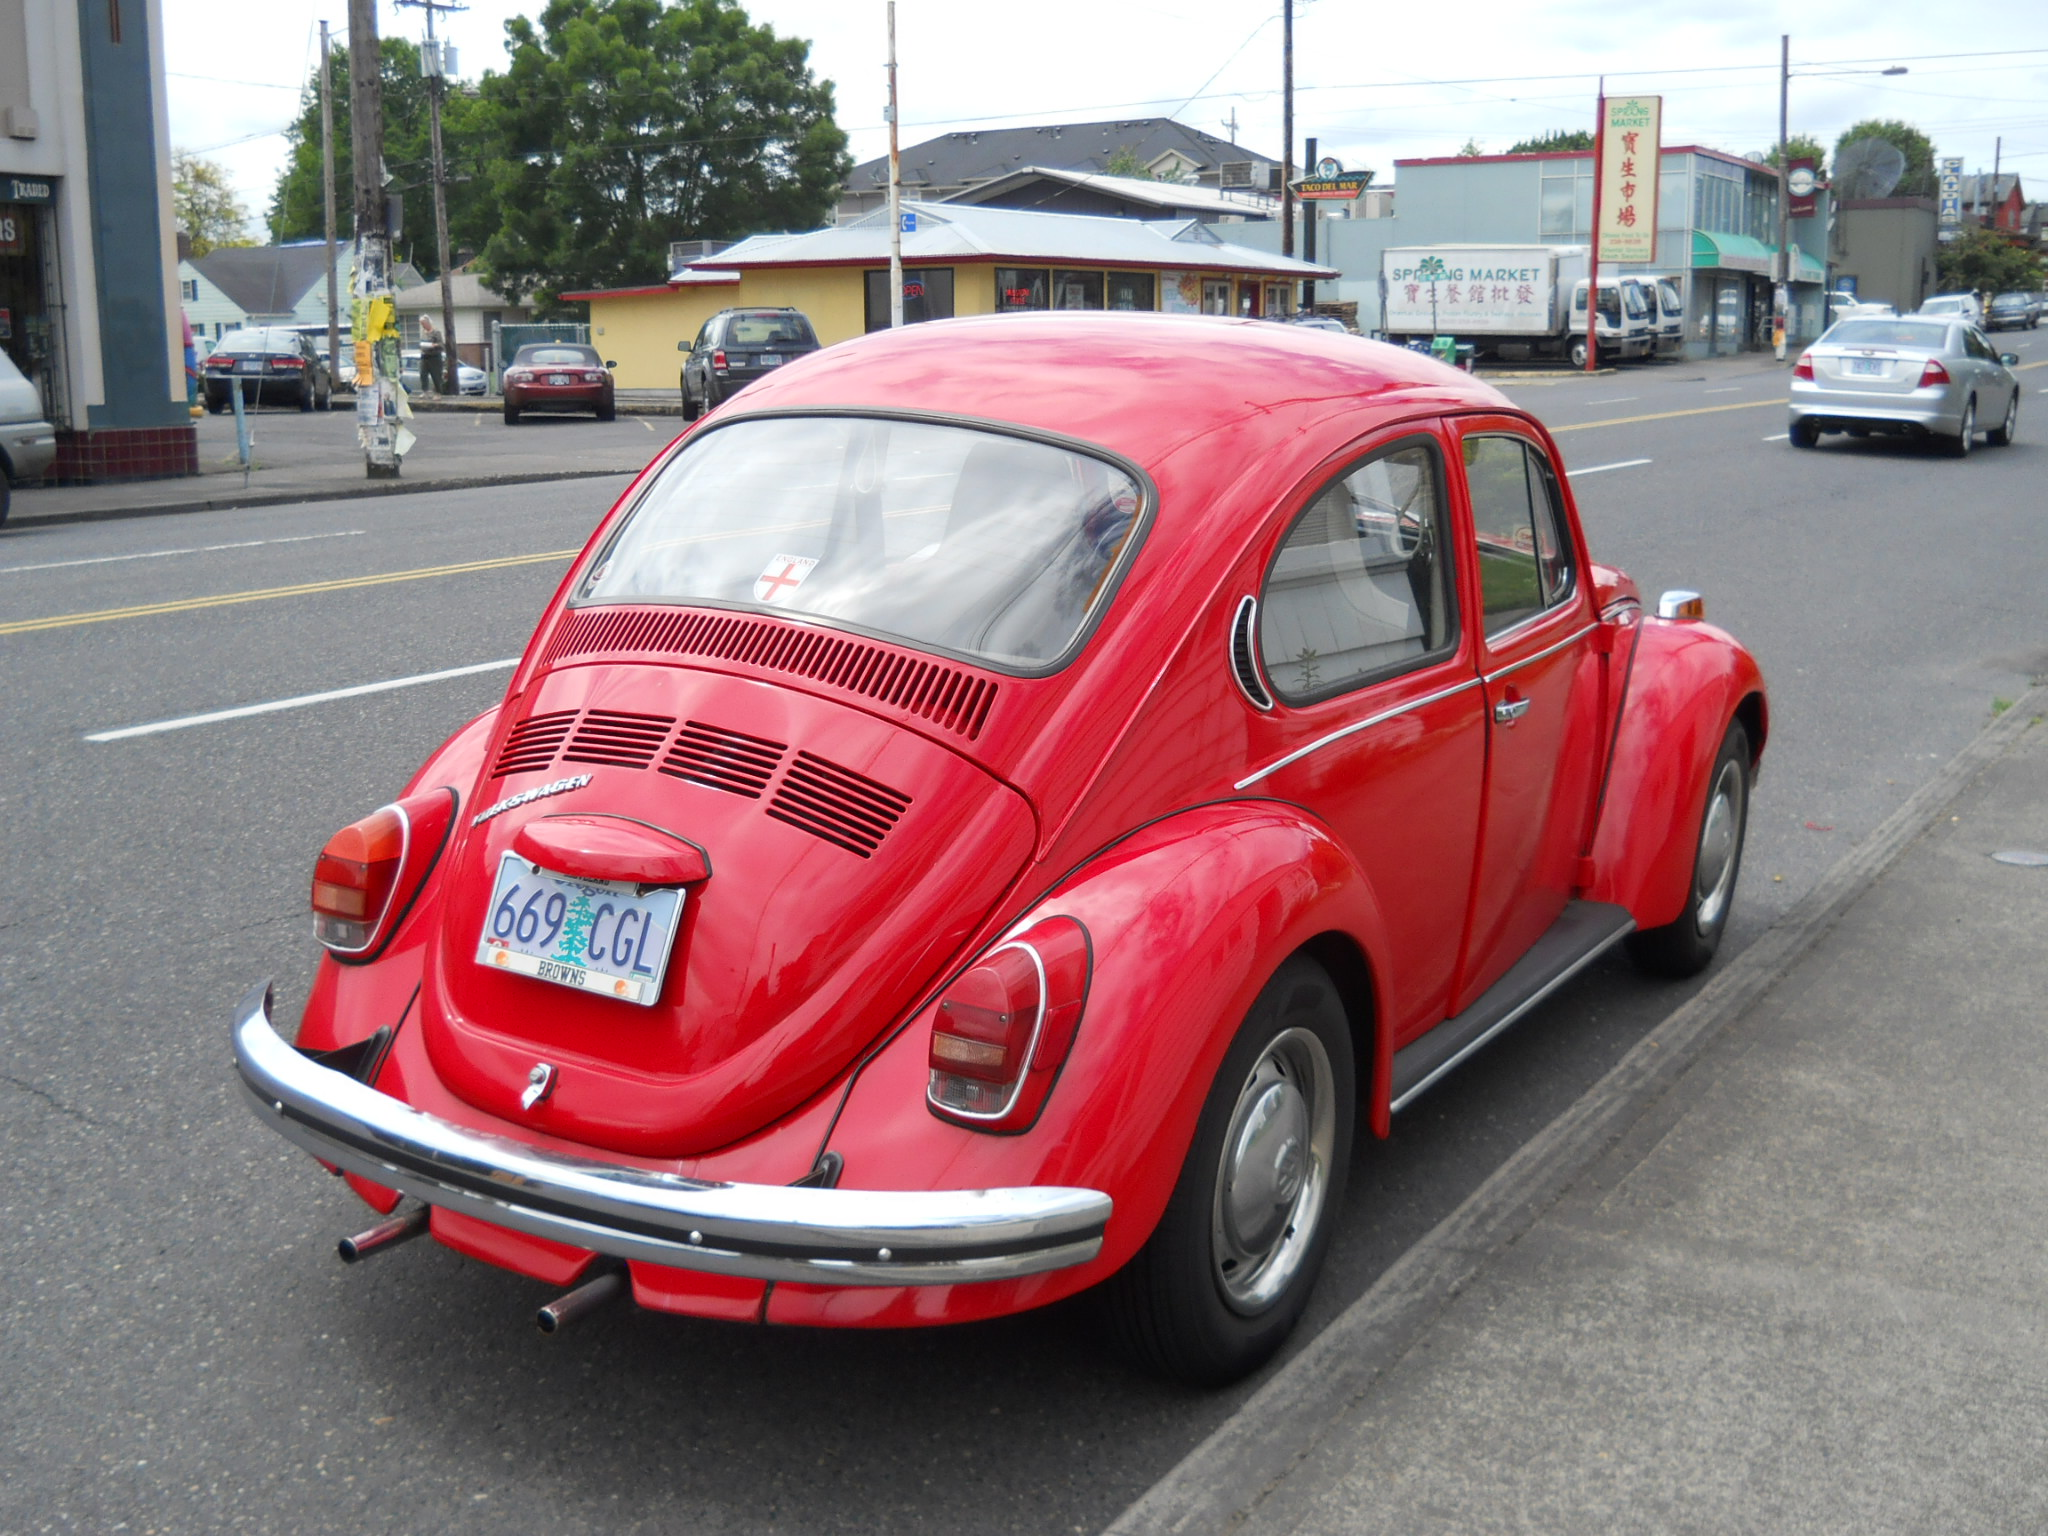 vw beetle hbr article essay Road to recovery: how does volkswagen bounce back from emissions scandal the resurgence of the vw beetle bug was one of the things that re-established the vw consumer-brand relationship for us consumers.